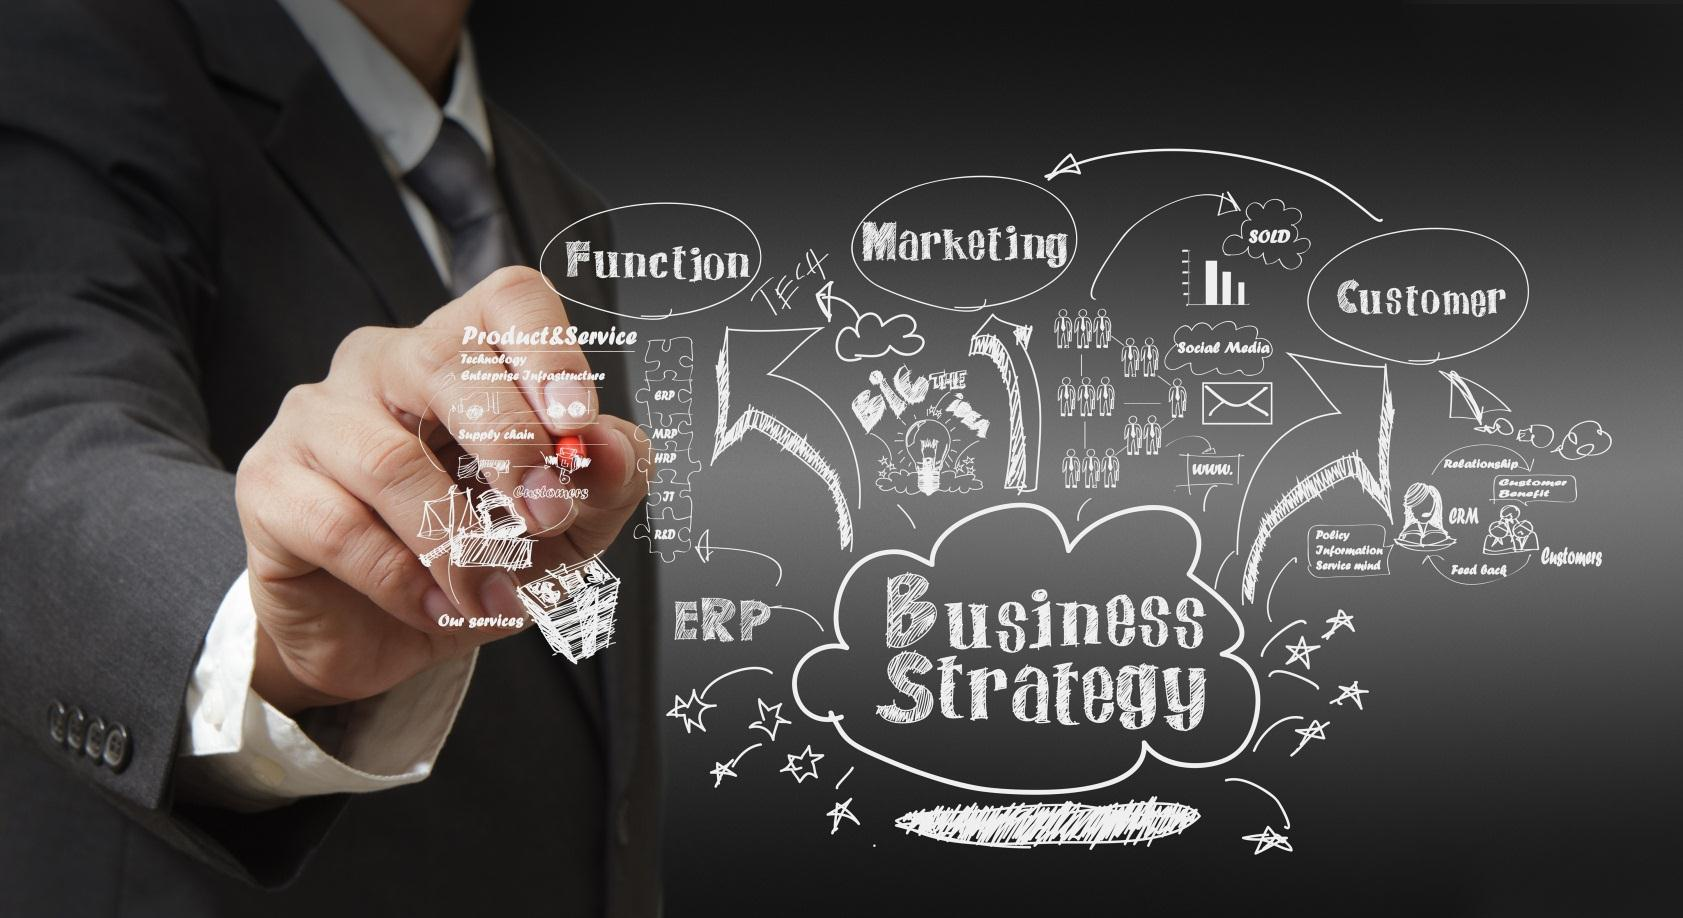 Business Strategy Certification and Why it is Important